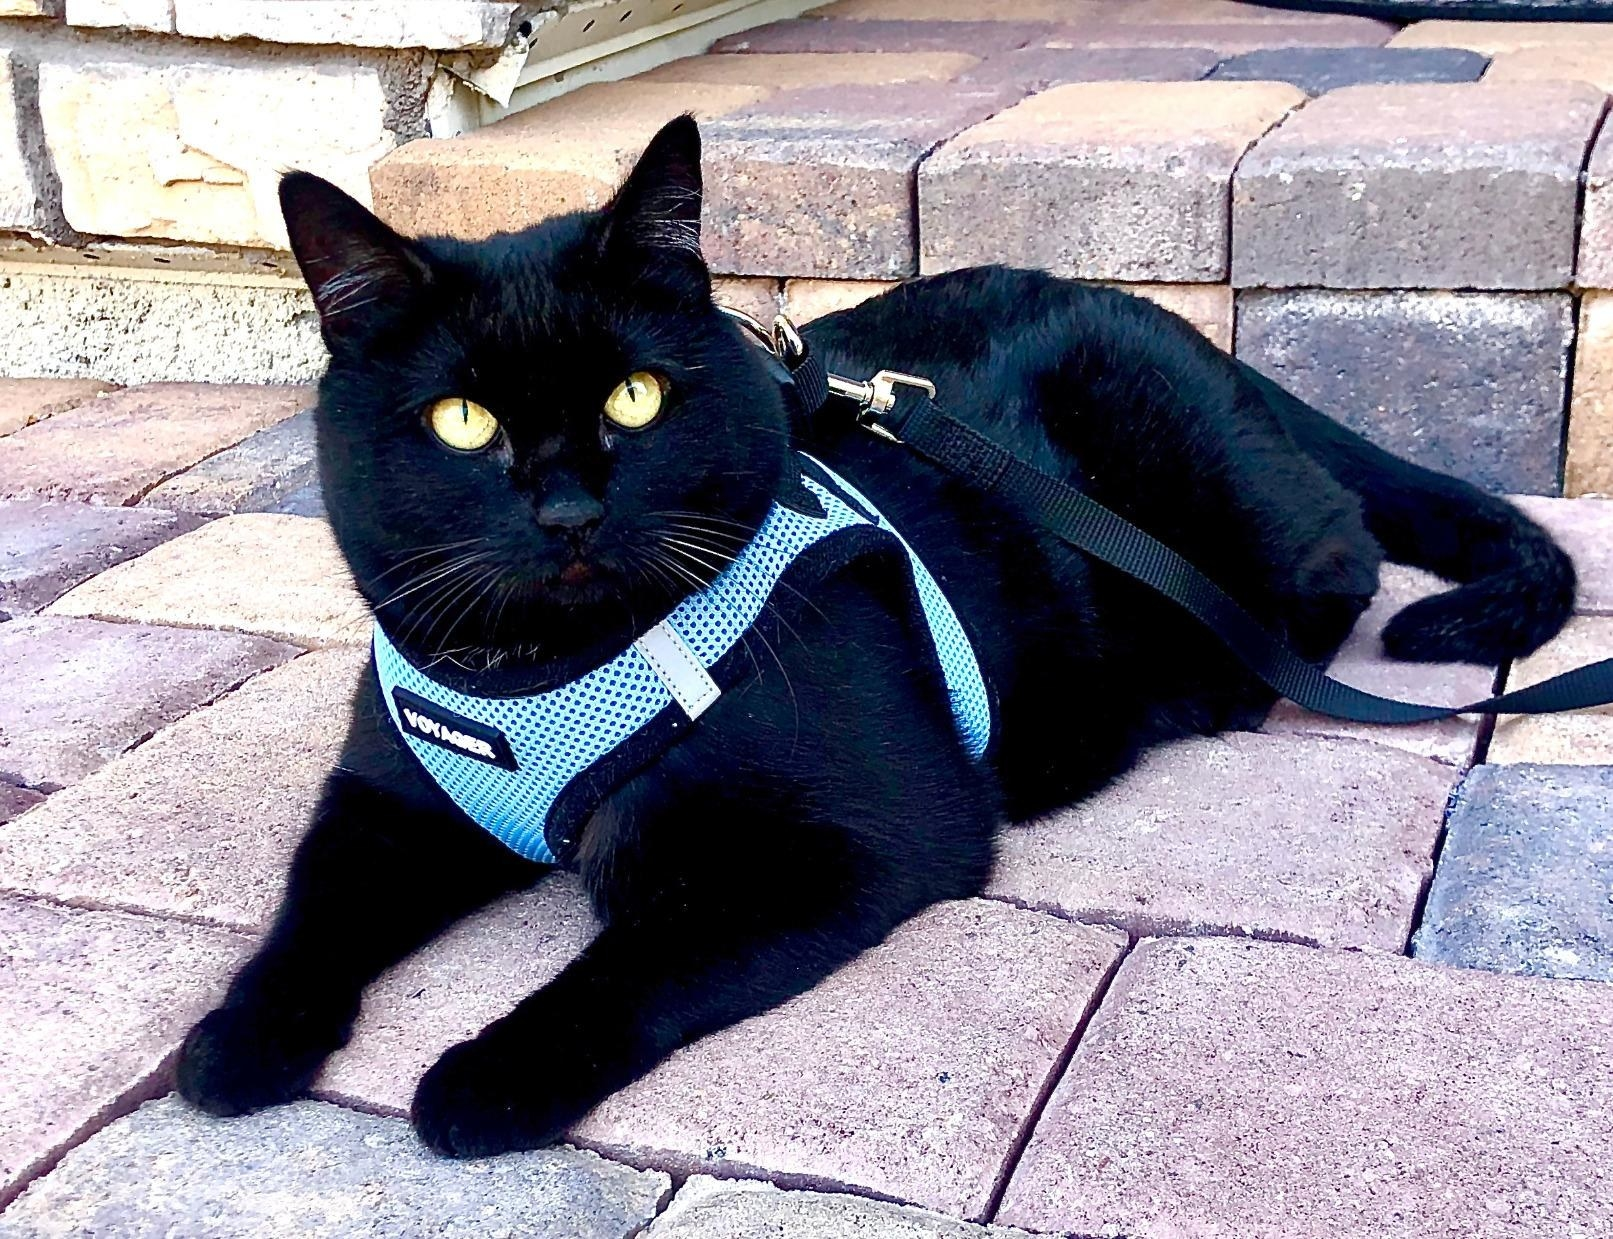 reviewer's black cat wearing a blue harness